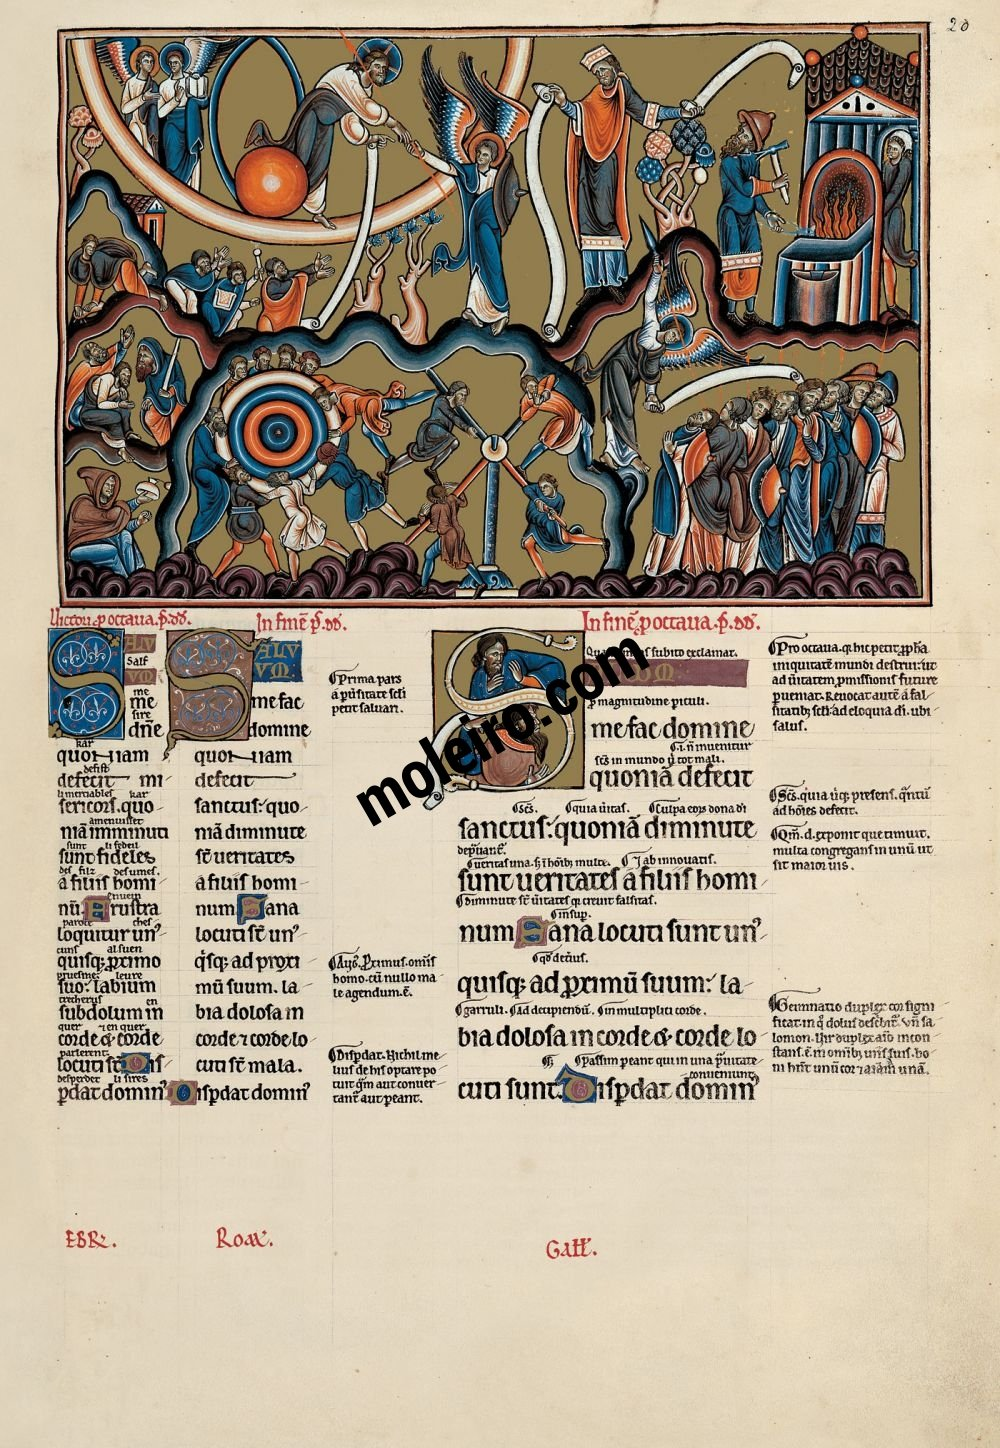 The Great Canterbury Psalter f. 20r, psalm 11  Save me Lord, for there is now no saint